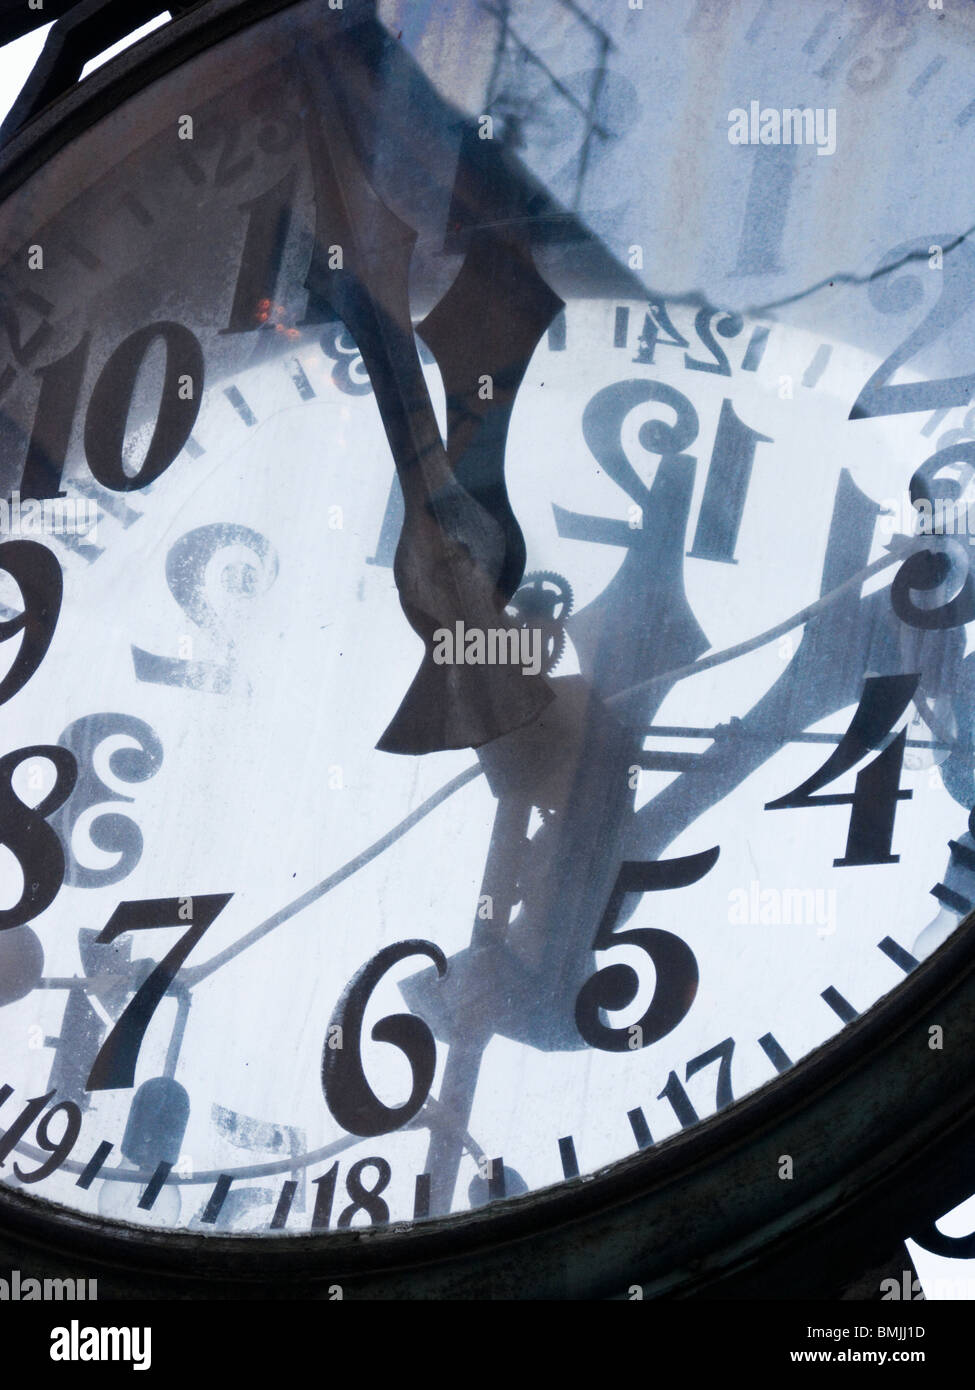 A clock, Sweden. - Stock Image